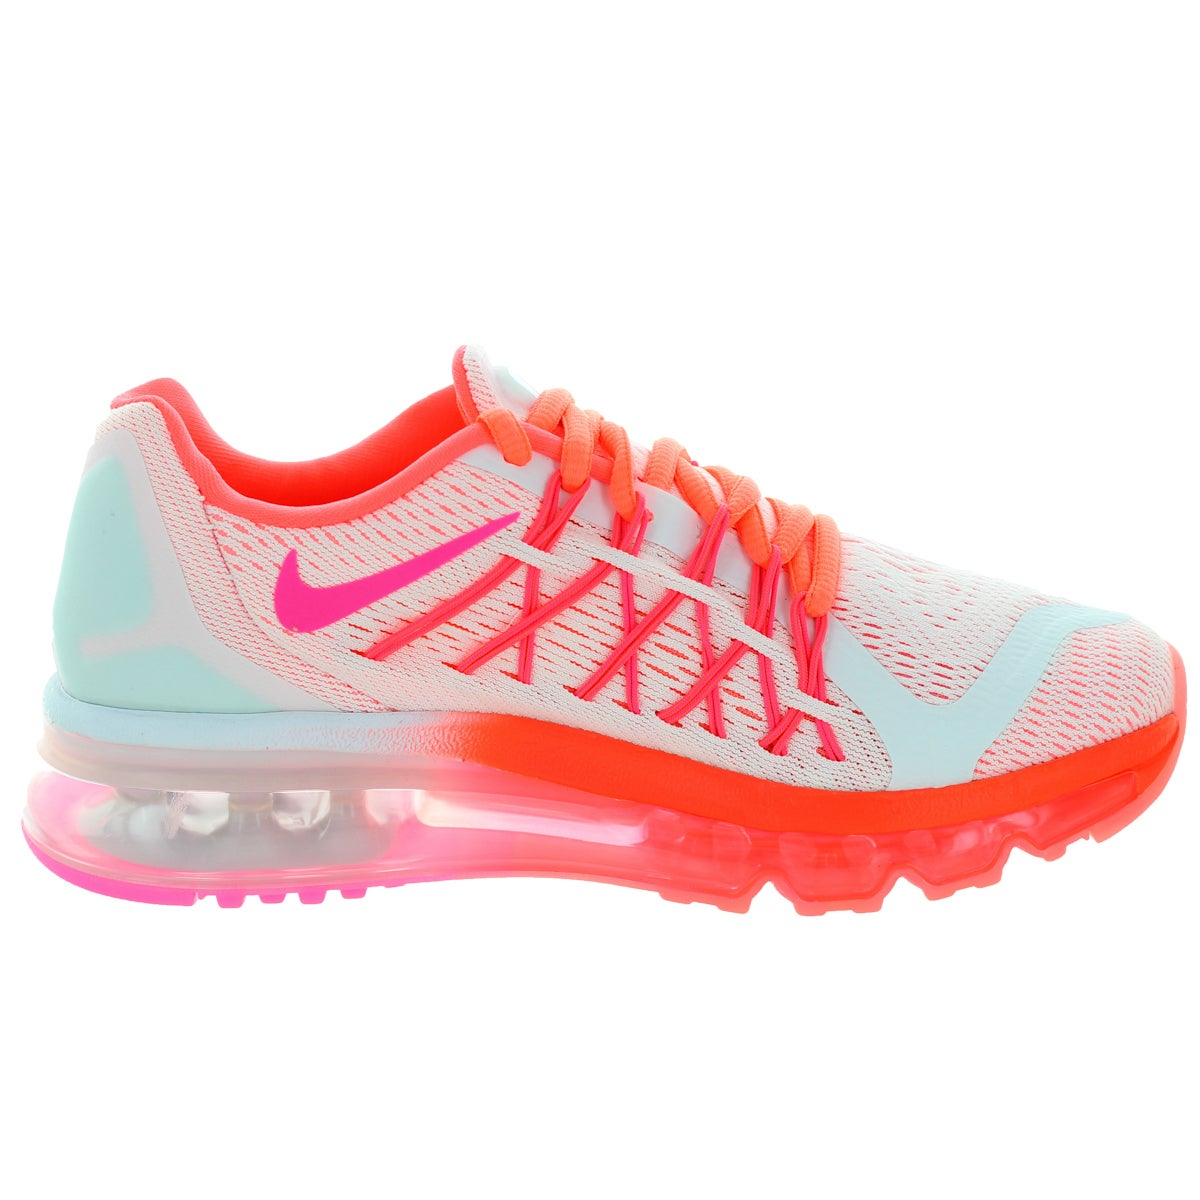 newest 1f8d4 8d2e5 Shop Nike Kids Air Max 2015 (Gs) White Pink Pow Hot Lava Lv Glw Running Shoe  - Free Shipping Today - Overstock - 12330614